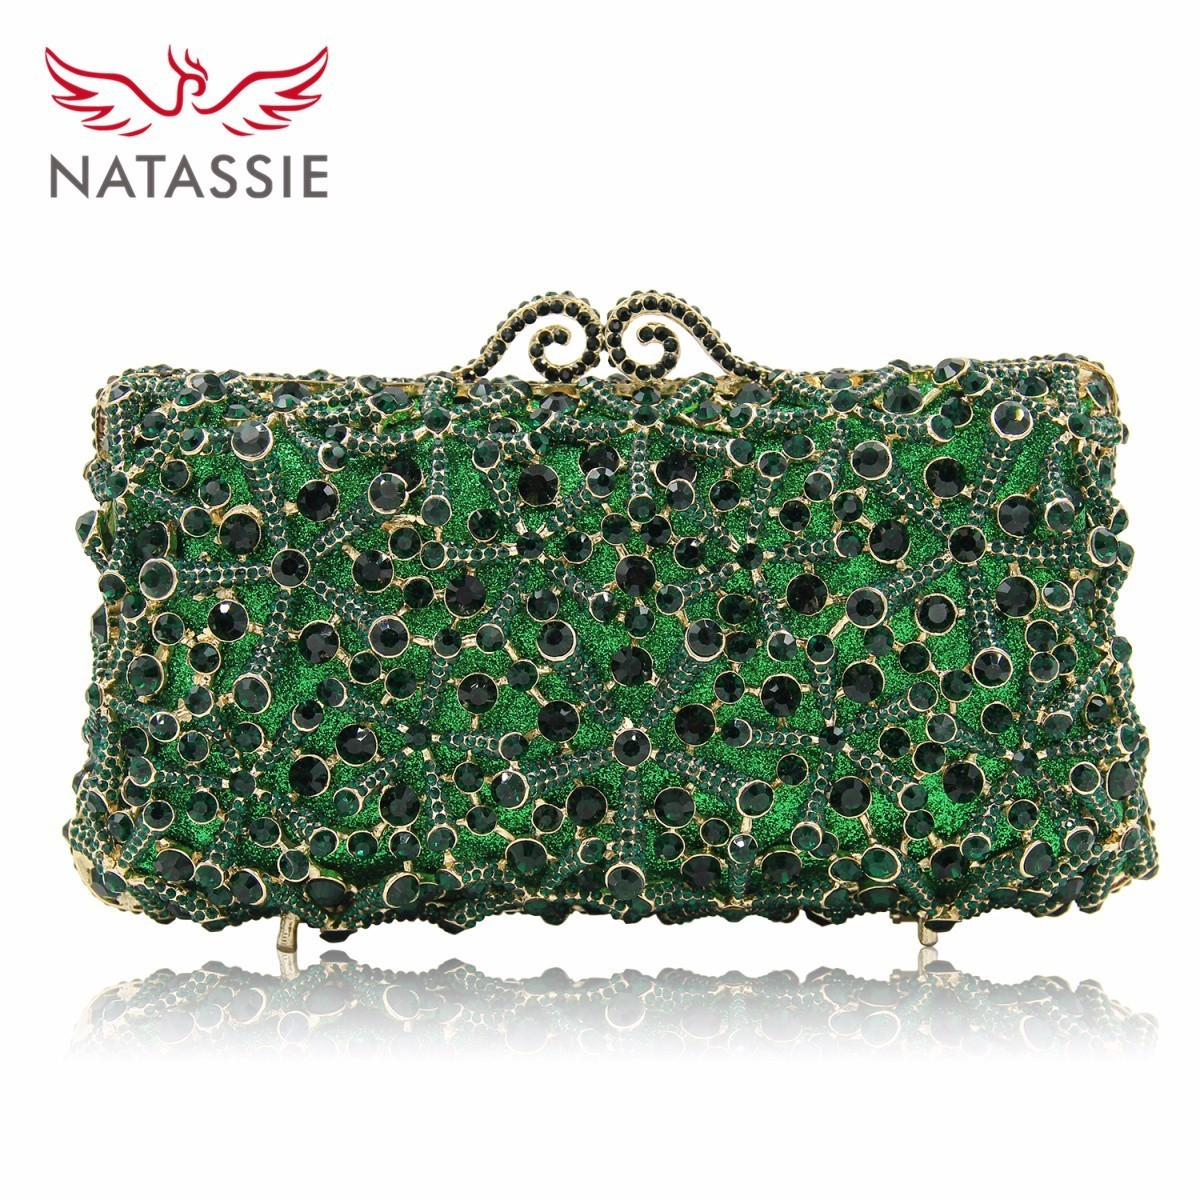 NATASSIE Fashion Flower Clutch Bags Full Crystal Clutches Women Silver Party Purse Ladies Wedding Bag With Long Chain free shipping a15 36 sky blue color fashion top crystal stones ring clutches bags for ladies nice party bag